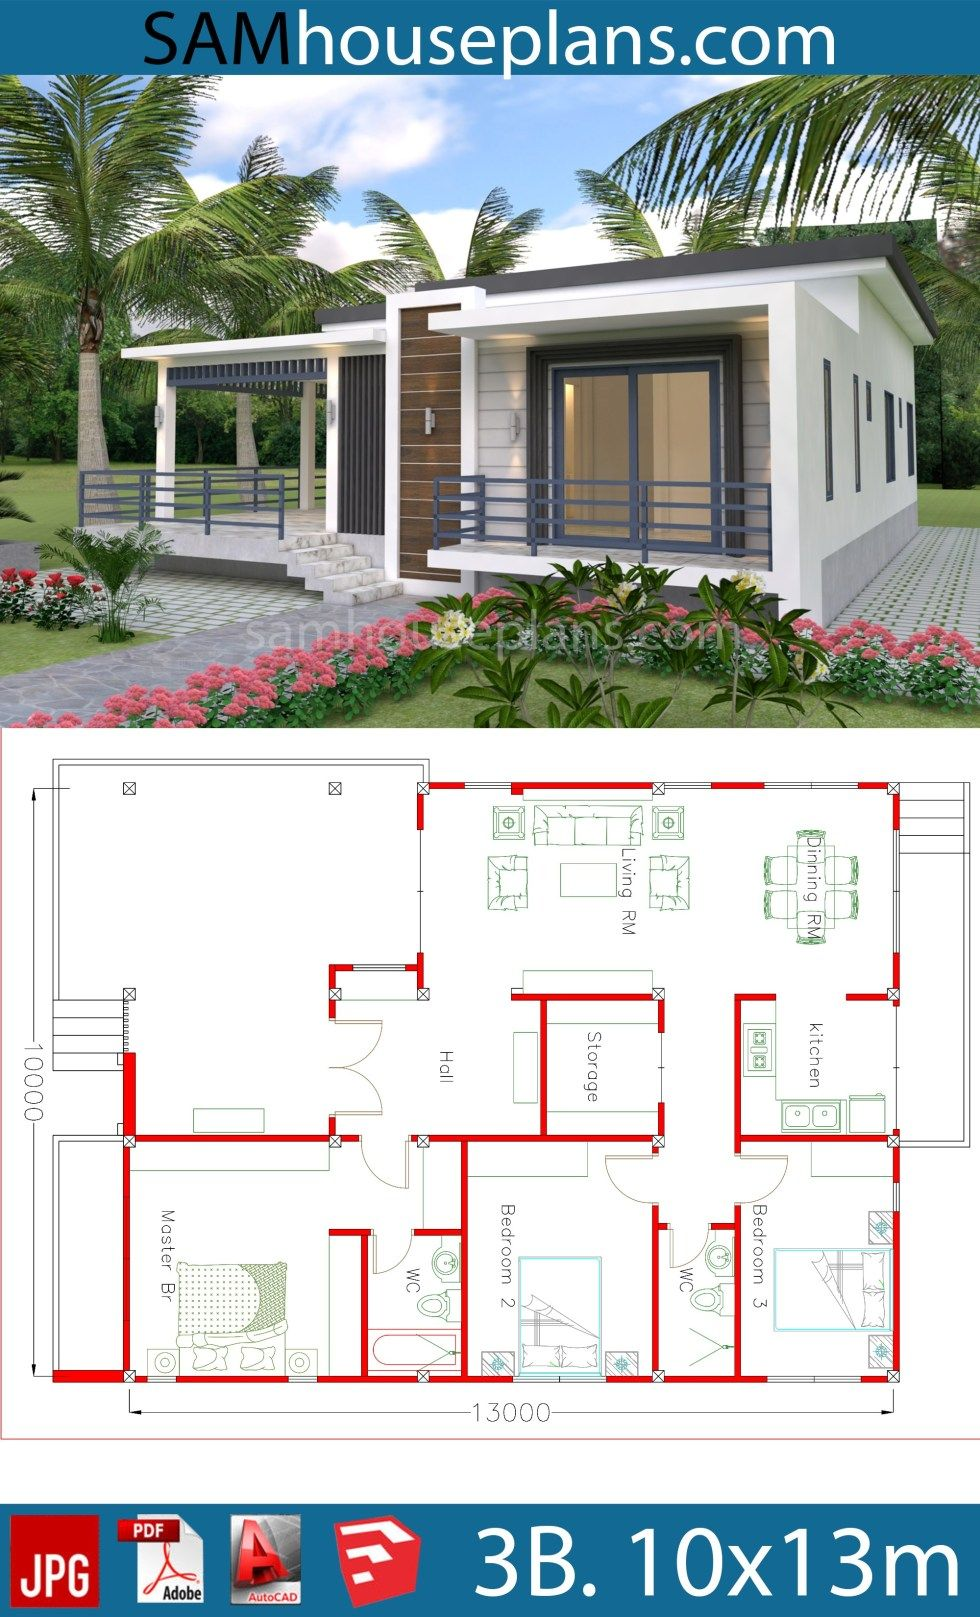 House Plans 10x13m With 3 Bedrooms Sam House Plans Affordable House Plans House Construction Plan Beautiful House Plans